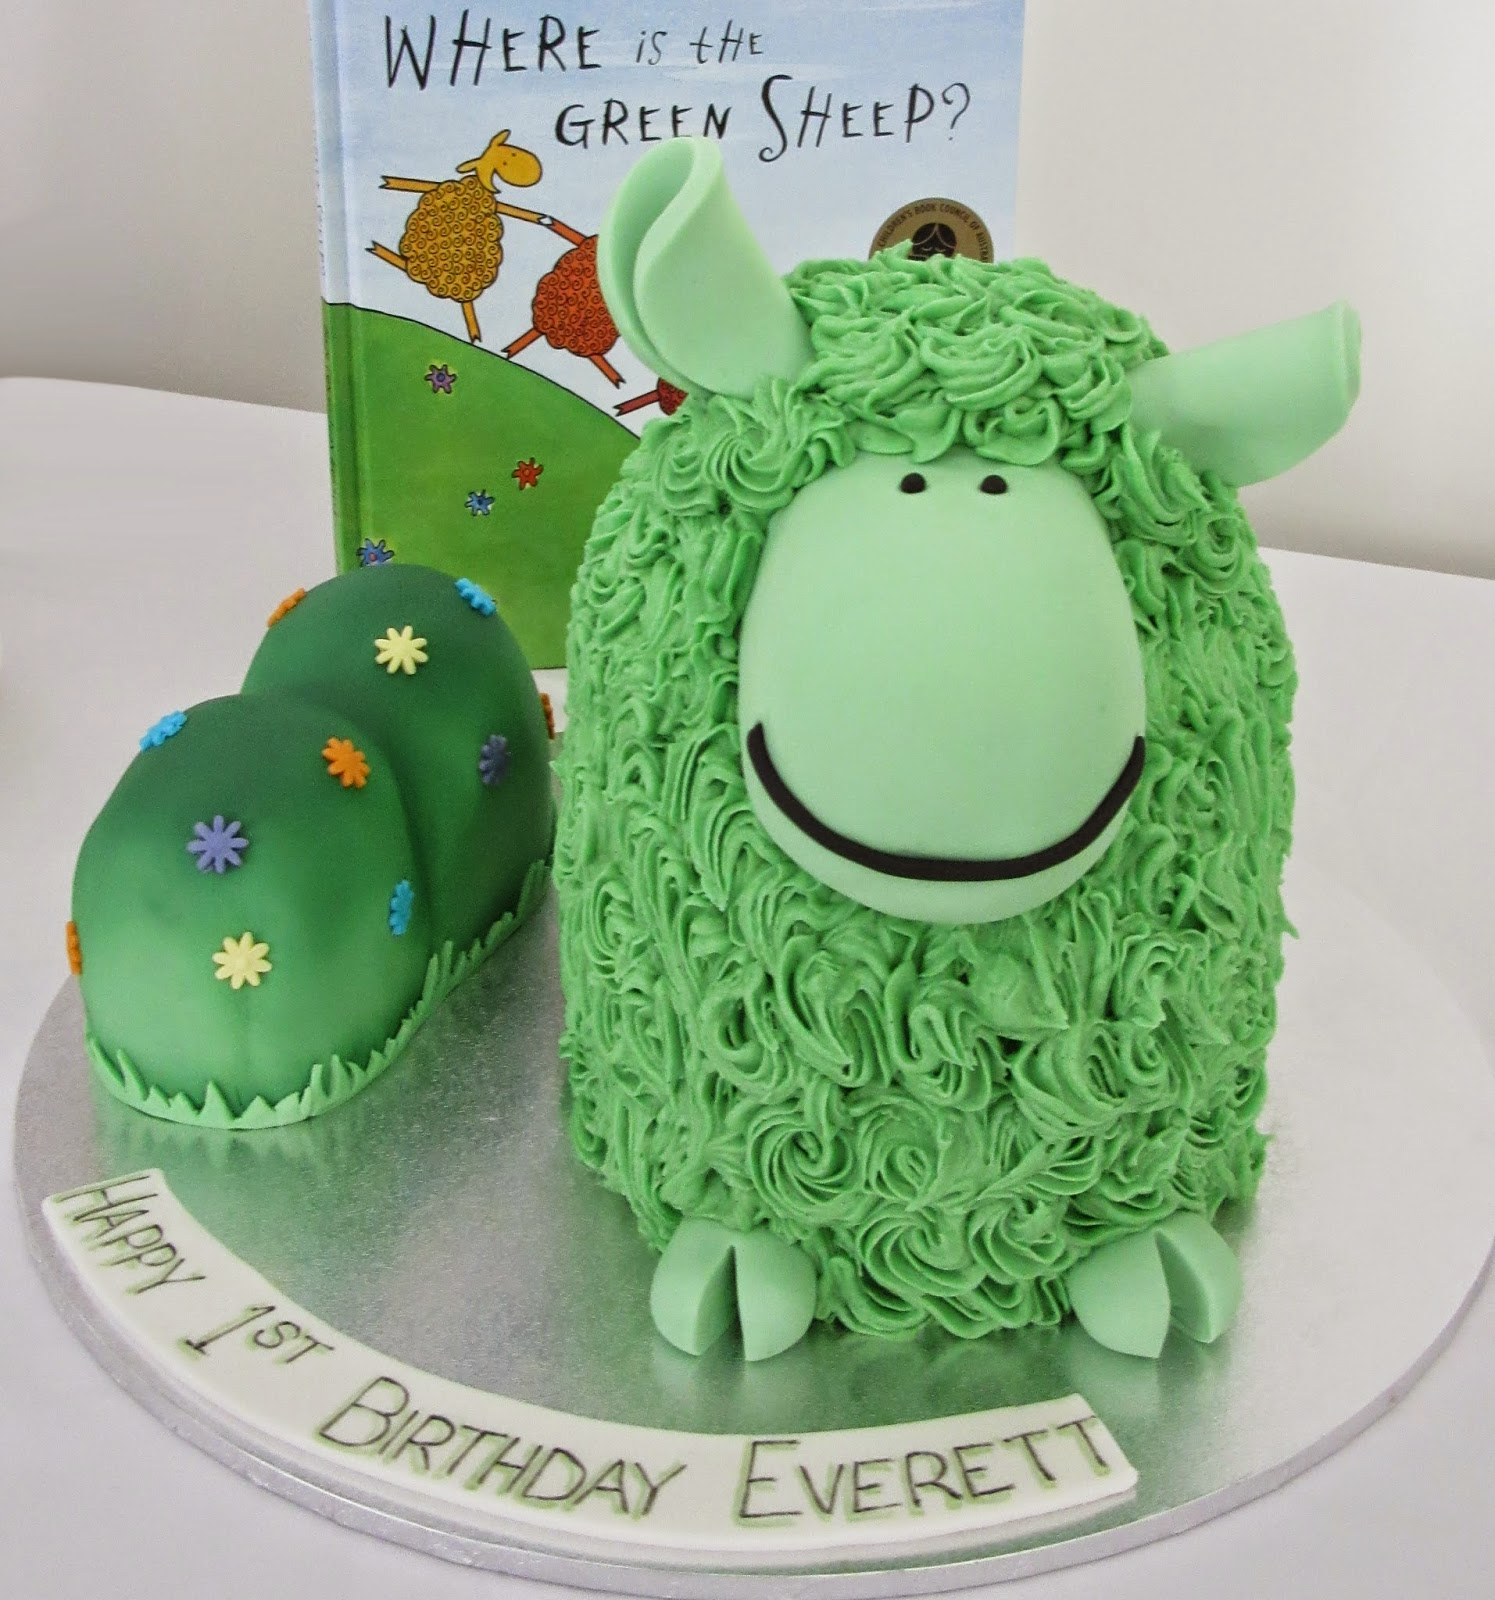 Nadas Cakes 3d Green Sheep Birthday Cake By Nadas Cakes Canberra